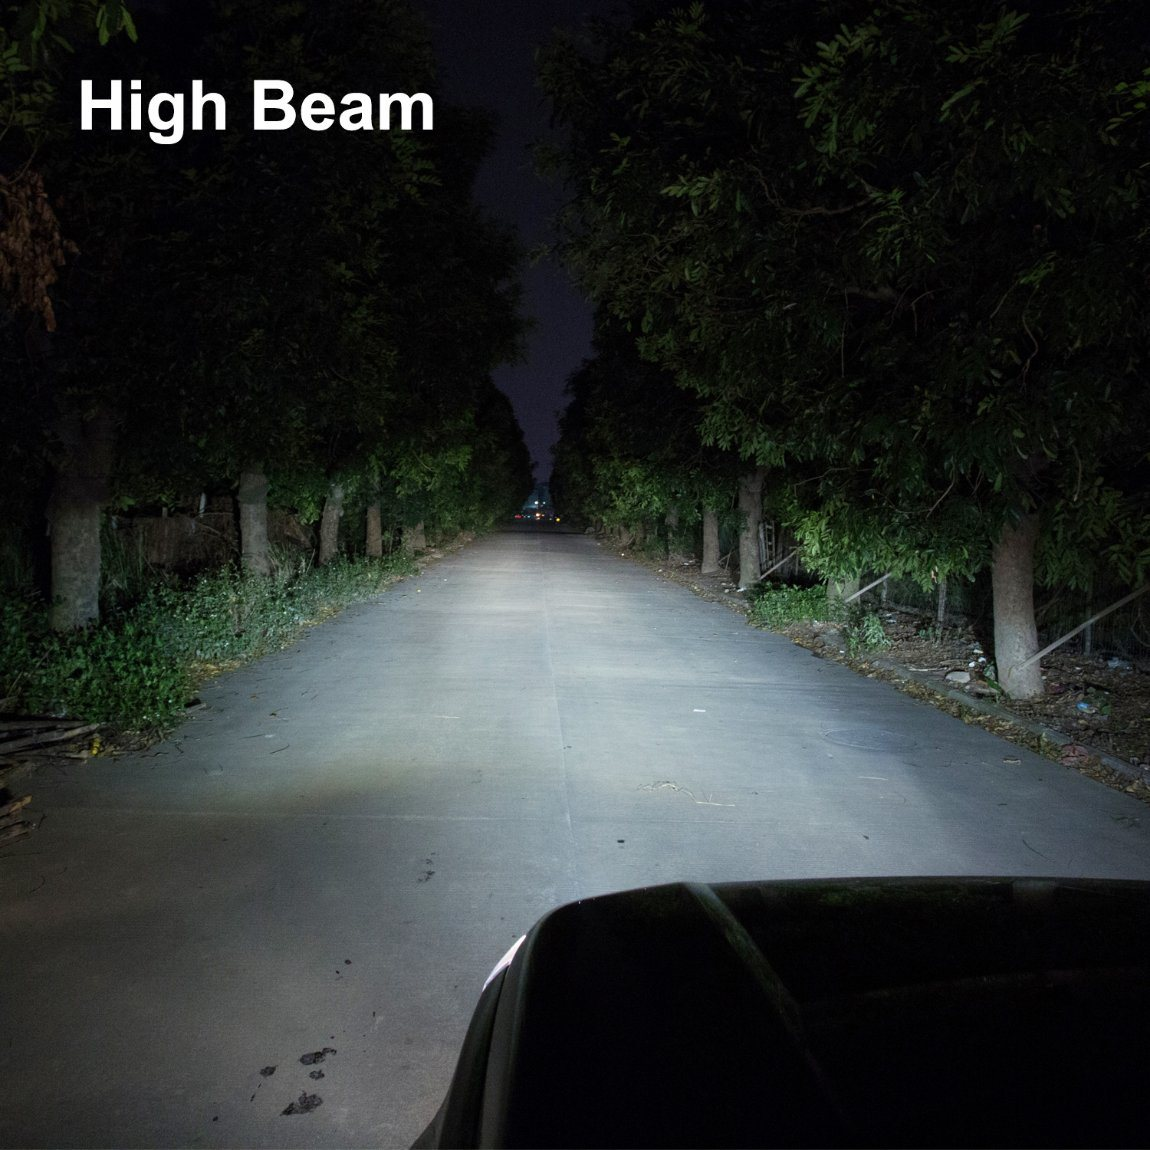 Better Quality 3800lm 36W S6 Car LED Headlight H4 H/L Beam Bulb Auto Headlight Kits